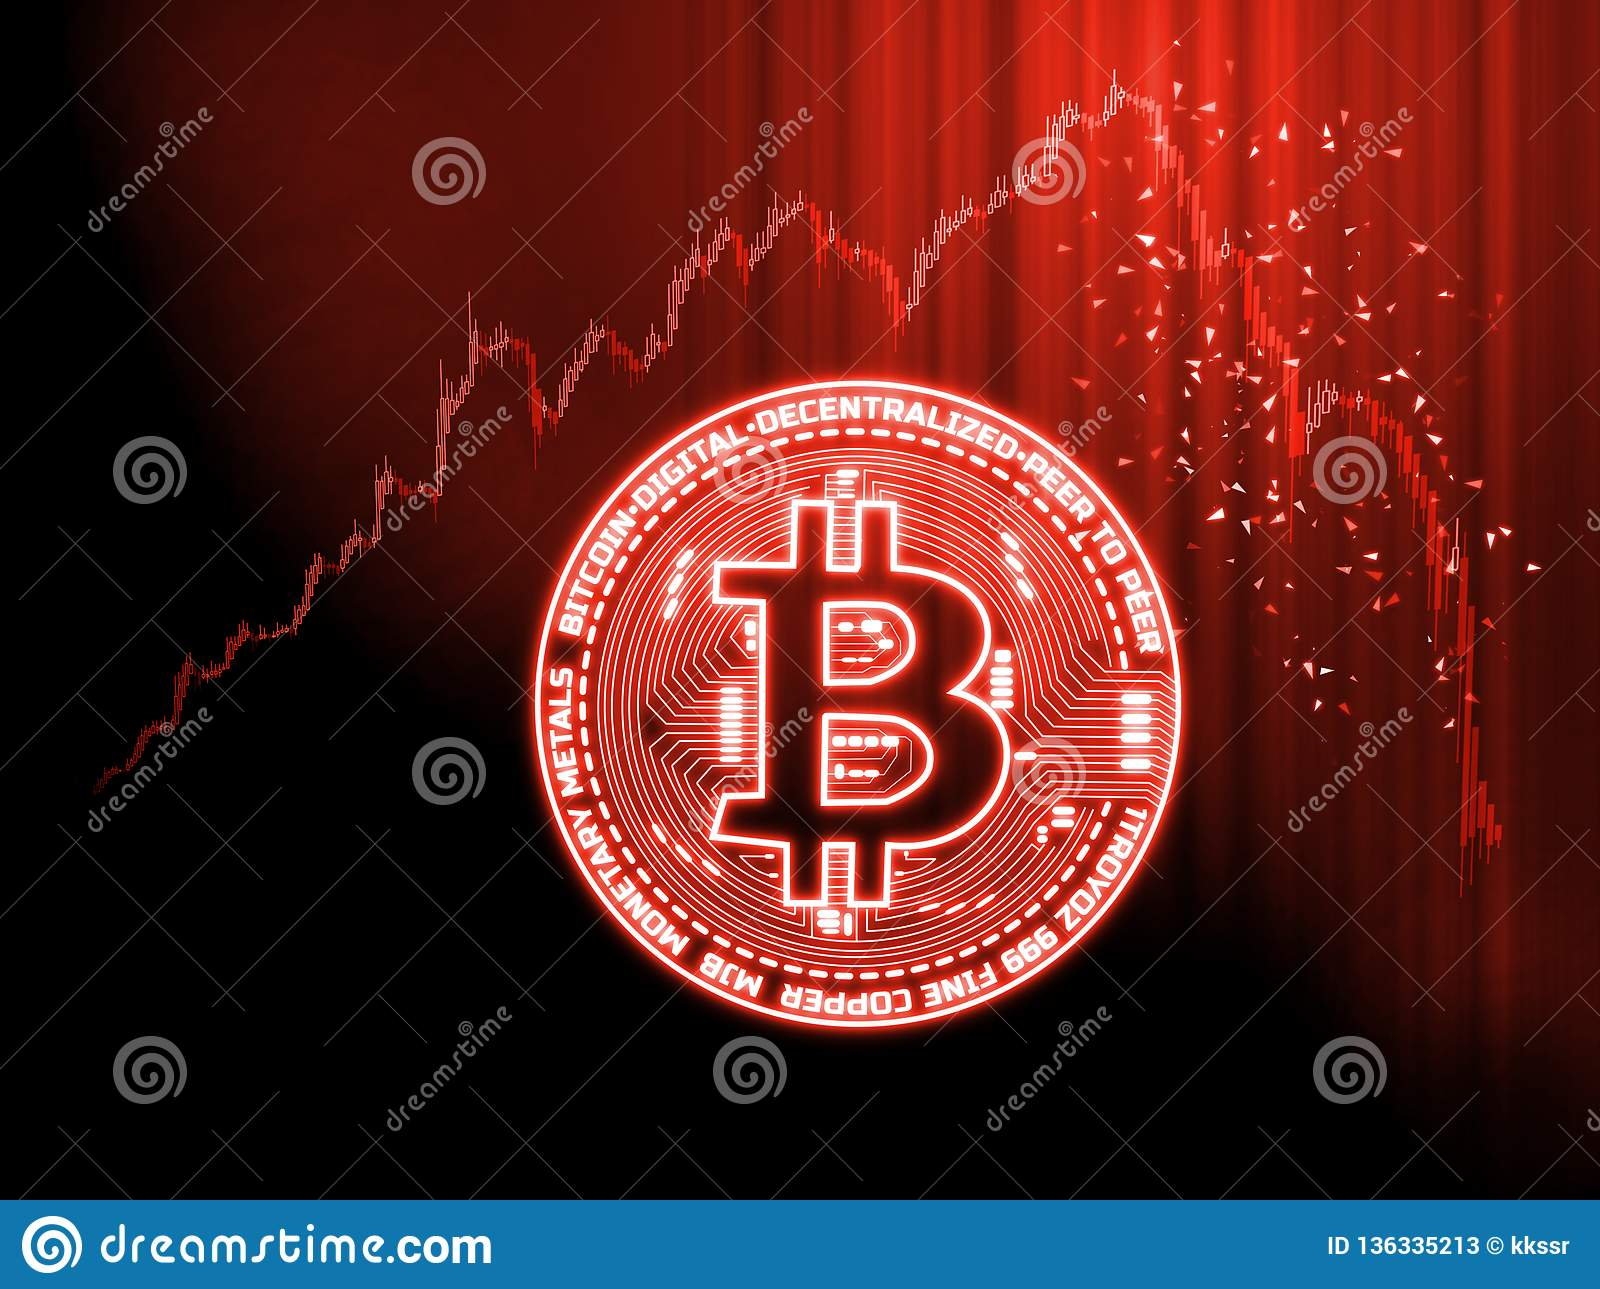 Crypto currencies market goes down concept. Glowing Bitcoin BTC on red candle stick charts with extreme price drop background